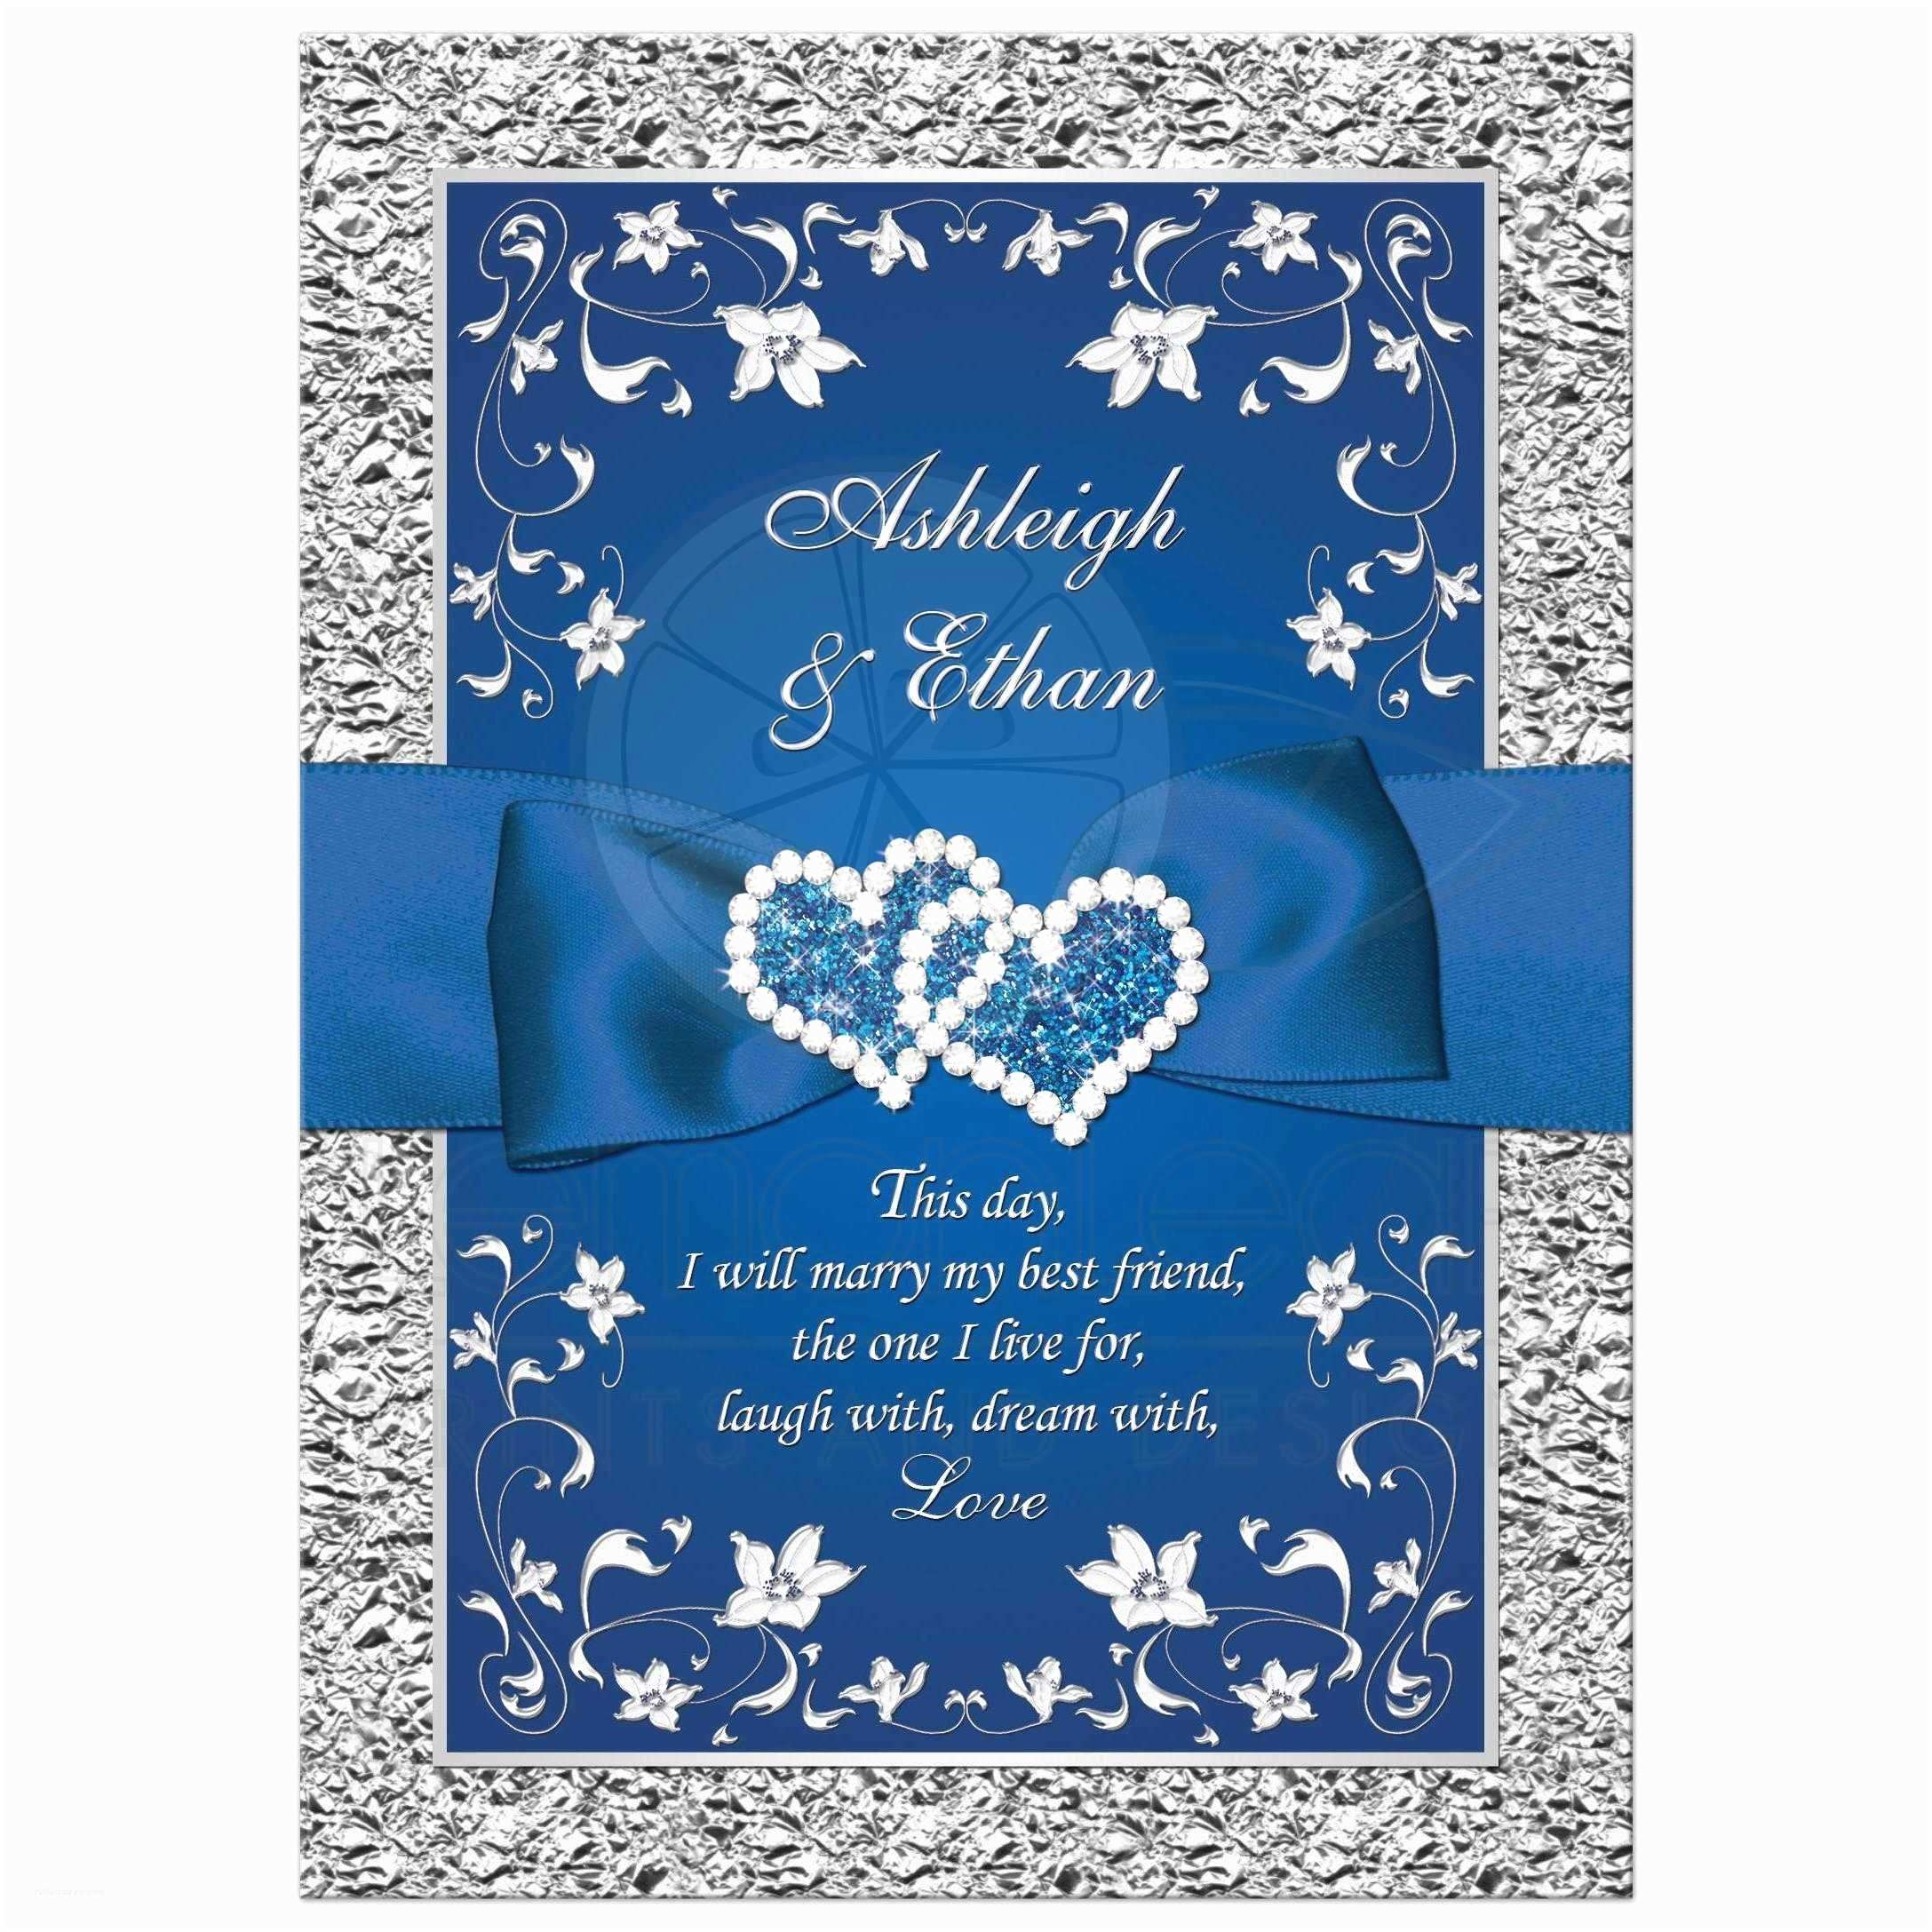 Royal Blue and Black Wedding Invitations Royal Blue Wedding Invitation